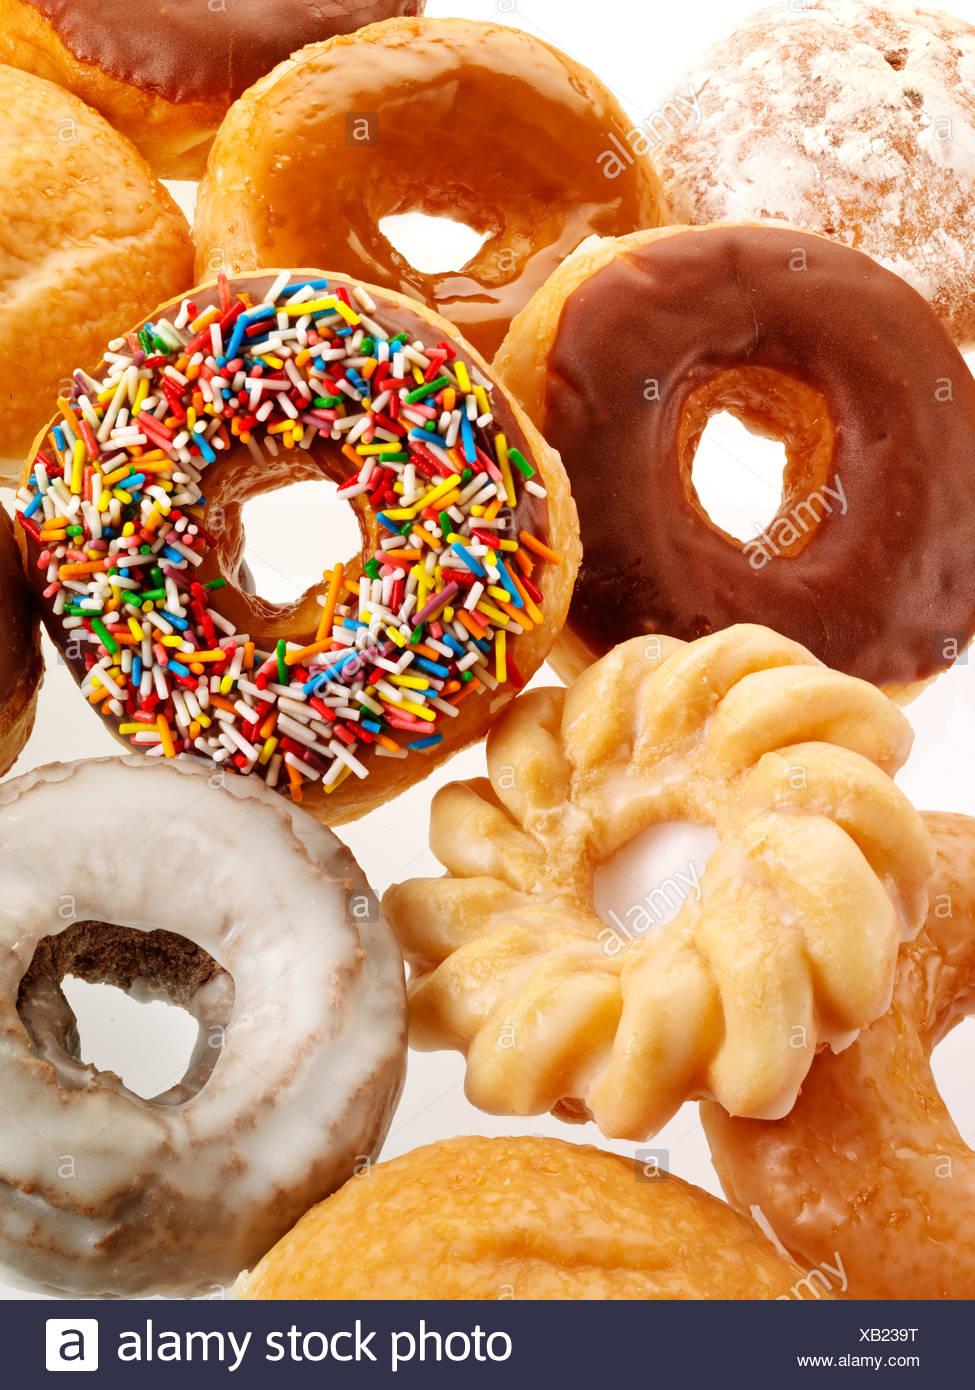 SELECTION OF DOUGHNUTS CUT OUT - Stock Image